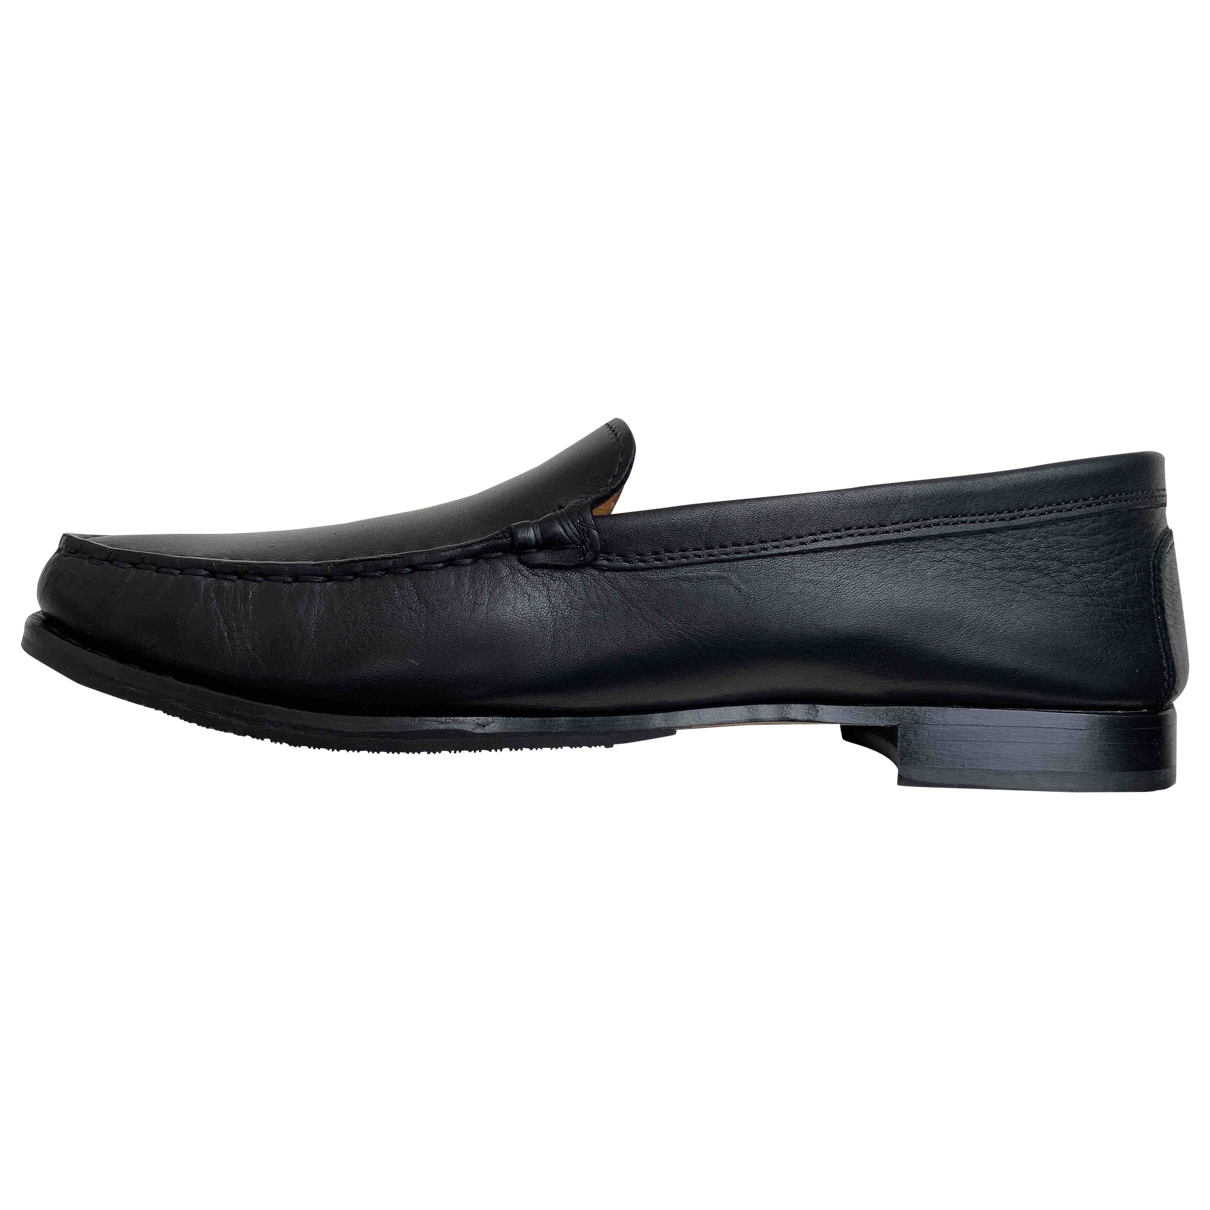 Russell & Bromley \N Black Leather Flats for Women 40.5 EU